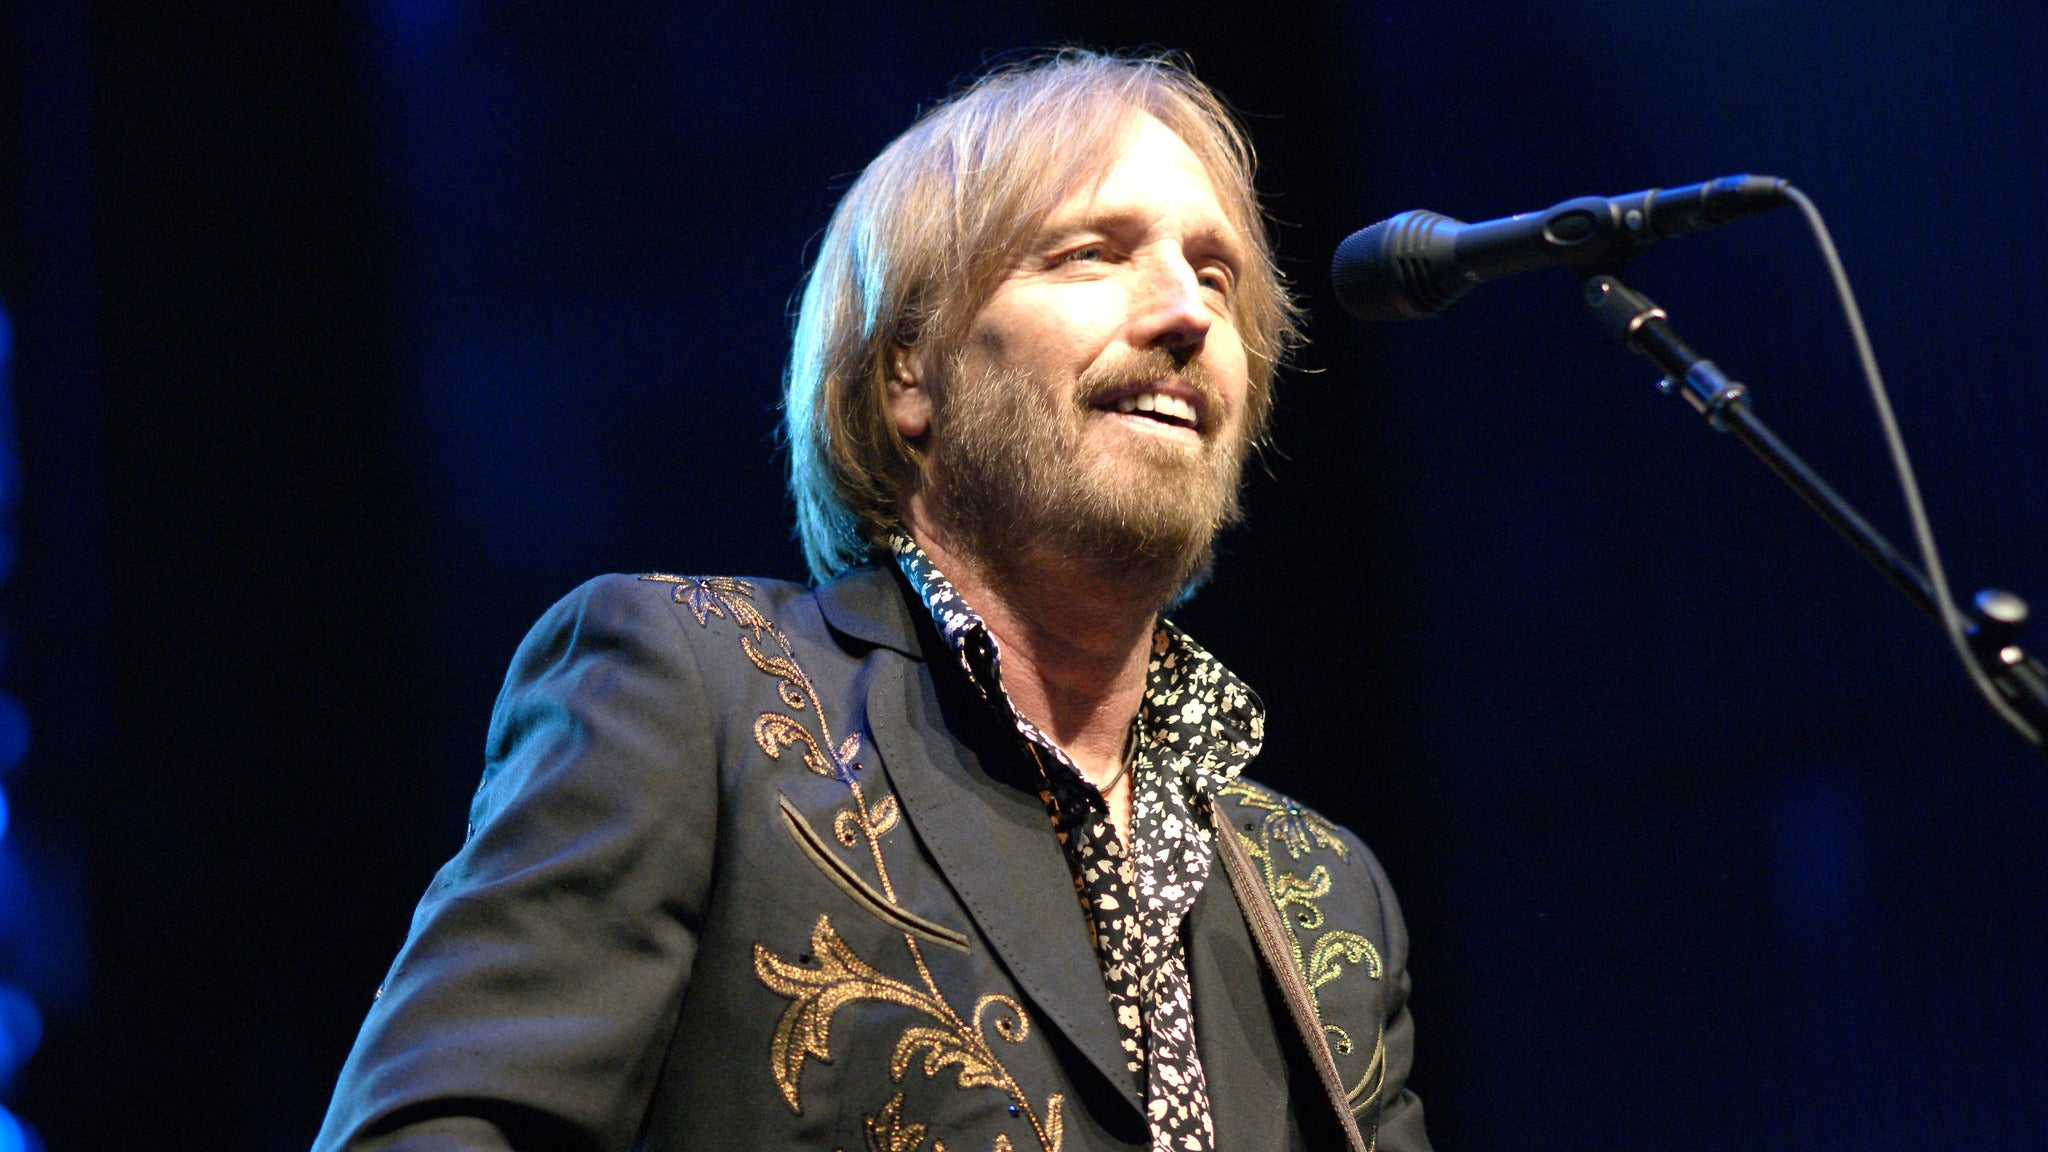 Tom Petty at Wells Fargo Arena - Des Moines